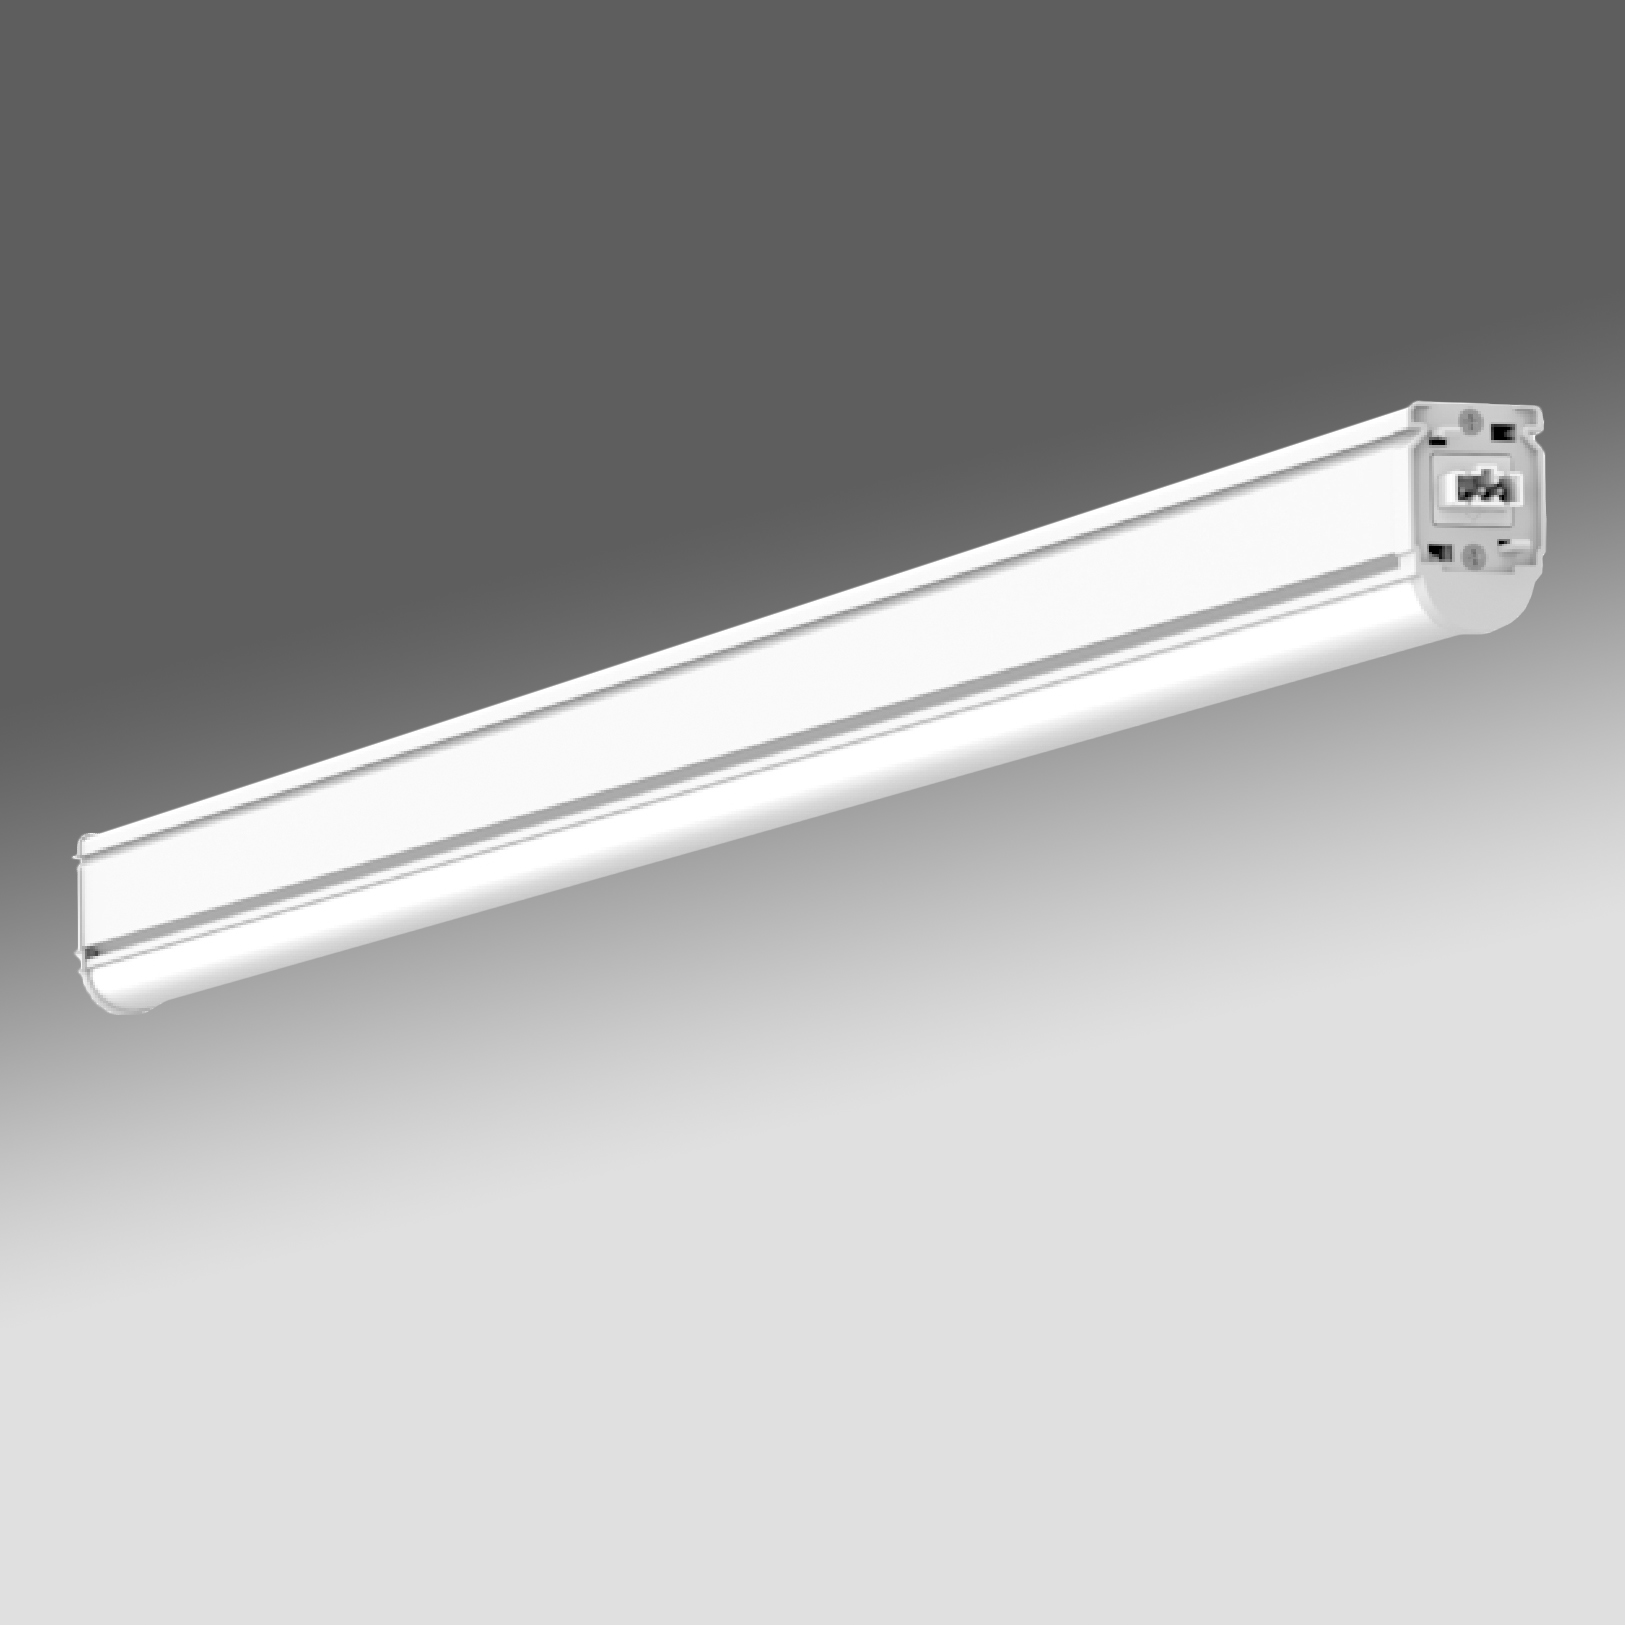 1 Stk SIMPLE LINE LED 2012 64W 7100lm/840 EVG IP20 weiß LIG8100004